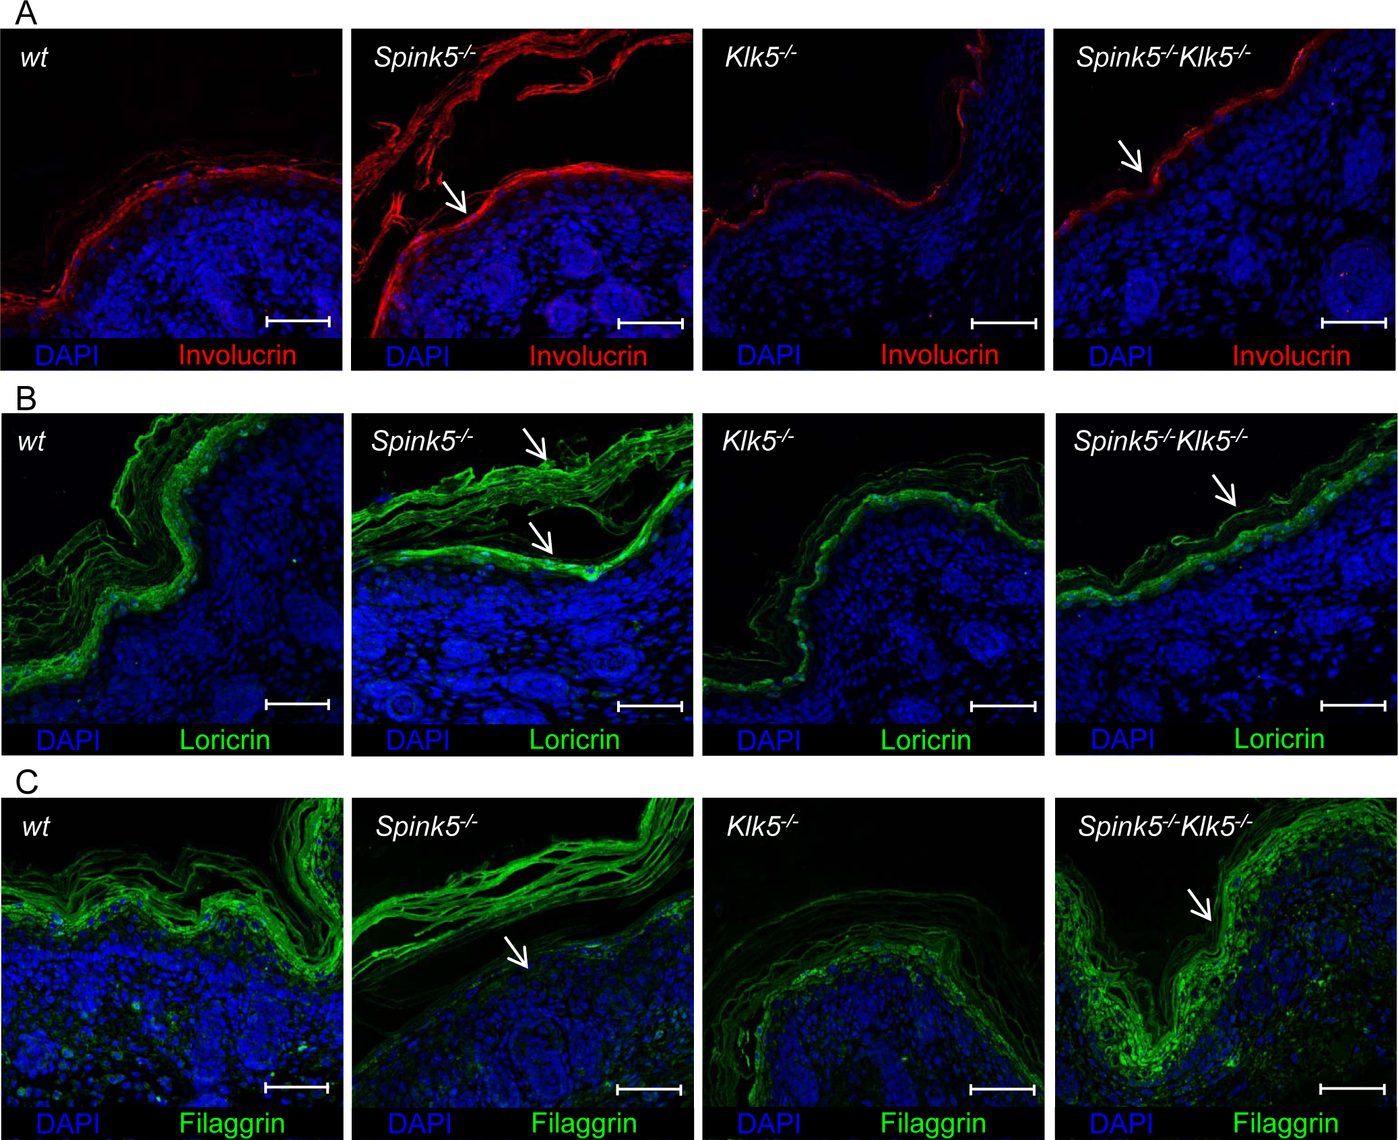 <i>Spink5</i><sup><i>-/-</i></sup><i>Klk5</i><sup><i>-/-</i></sup> skin does not show evidence of abnormal epidermal differentiation.